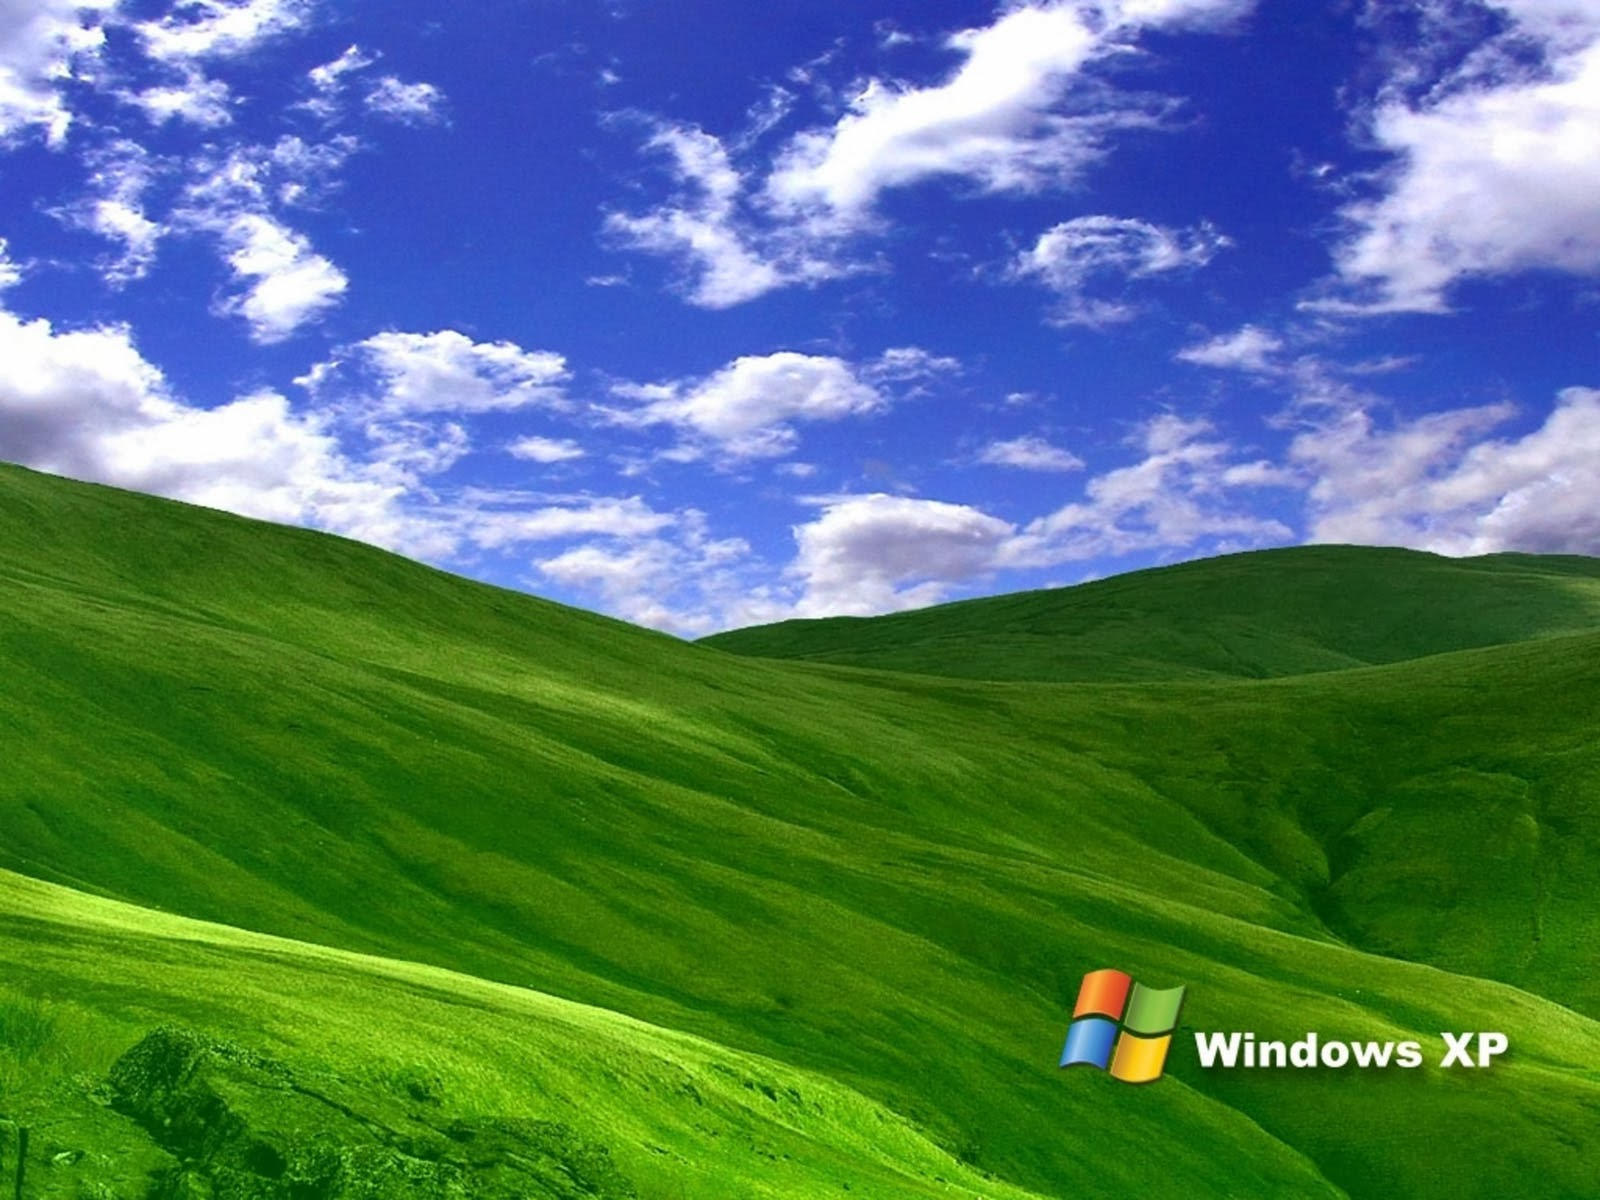 windows xp desktop backgrounds amxxcs how to restore the original desktop background in windows xp our 1600x1200